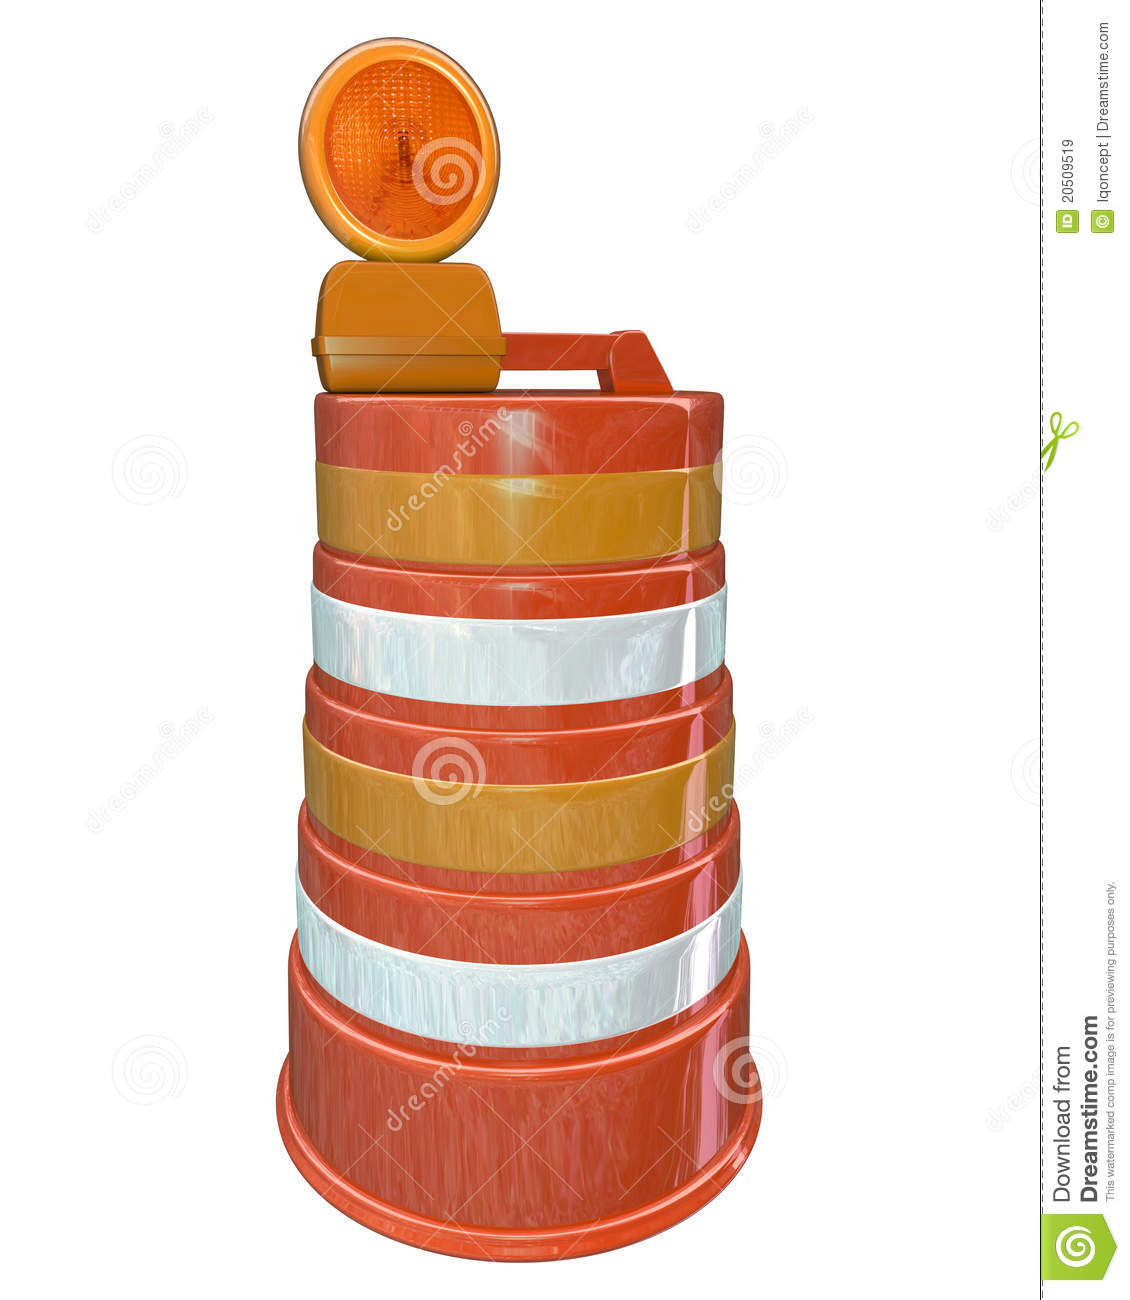 Road Construction Barrels Pictures to Pin on Pinterest ...